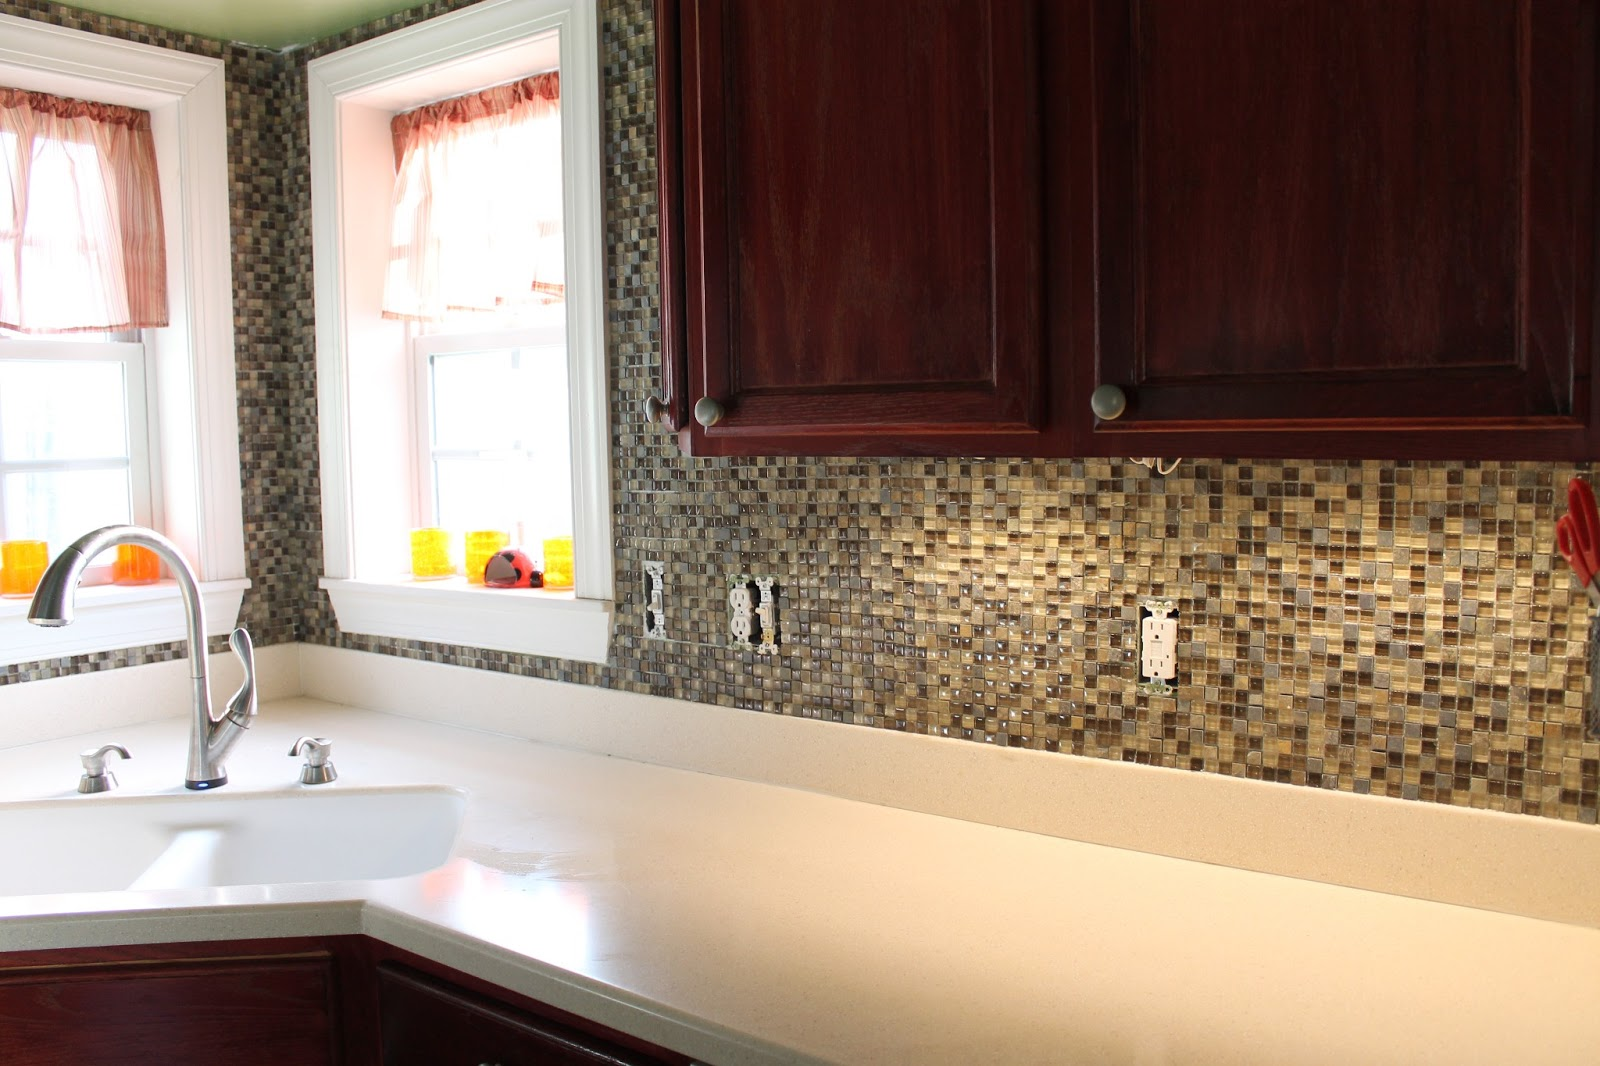 How to put up a backsplash in kitchen for Cheap diy kitchen backsplash ideas